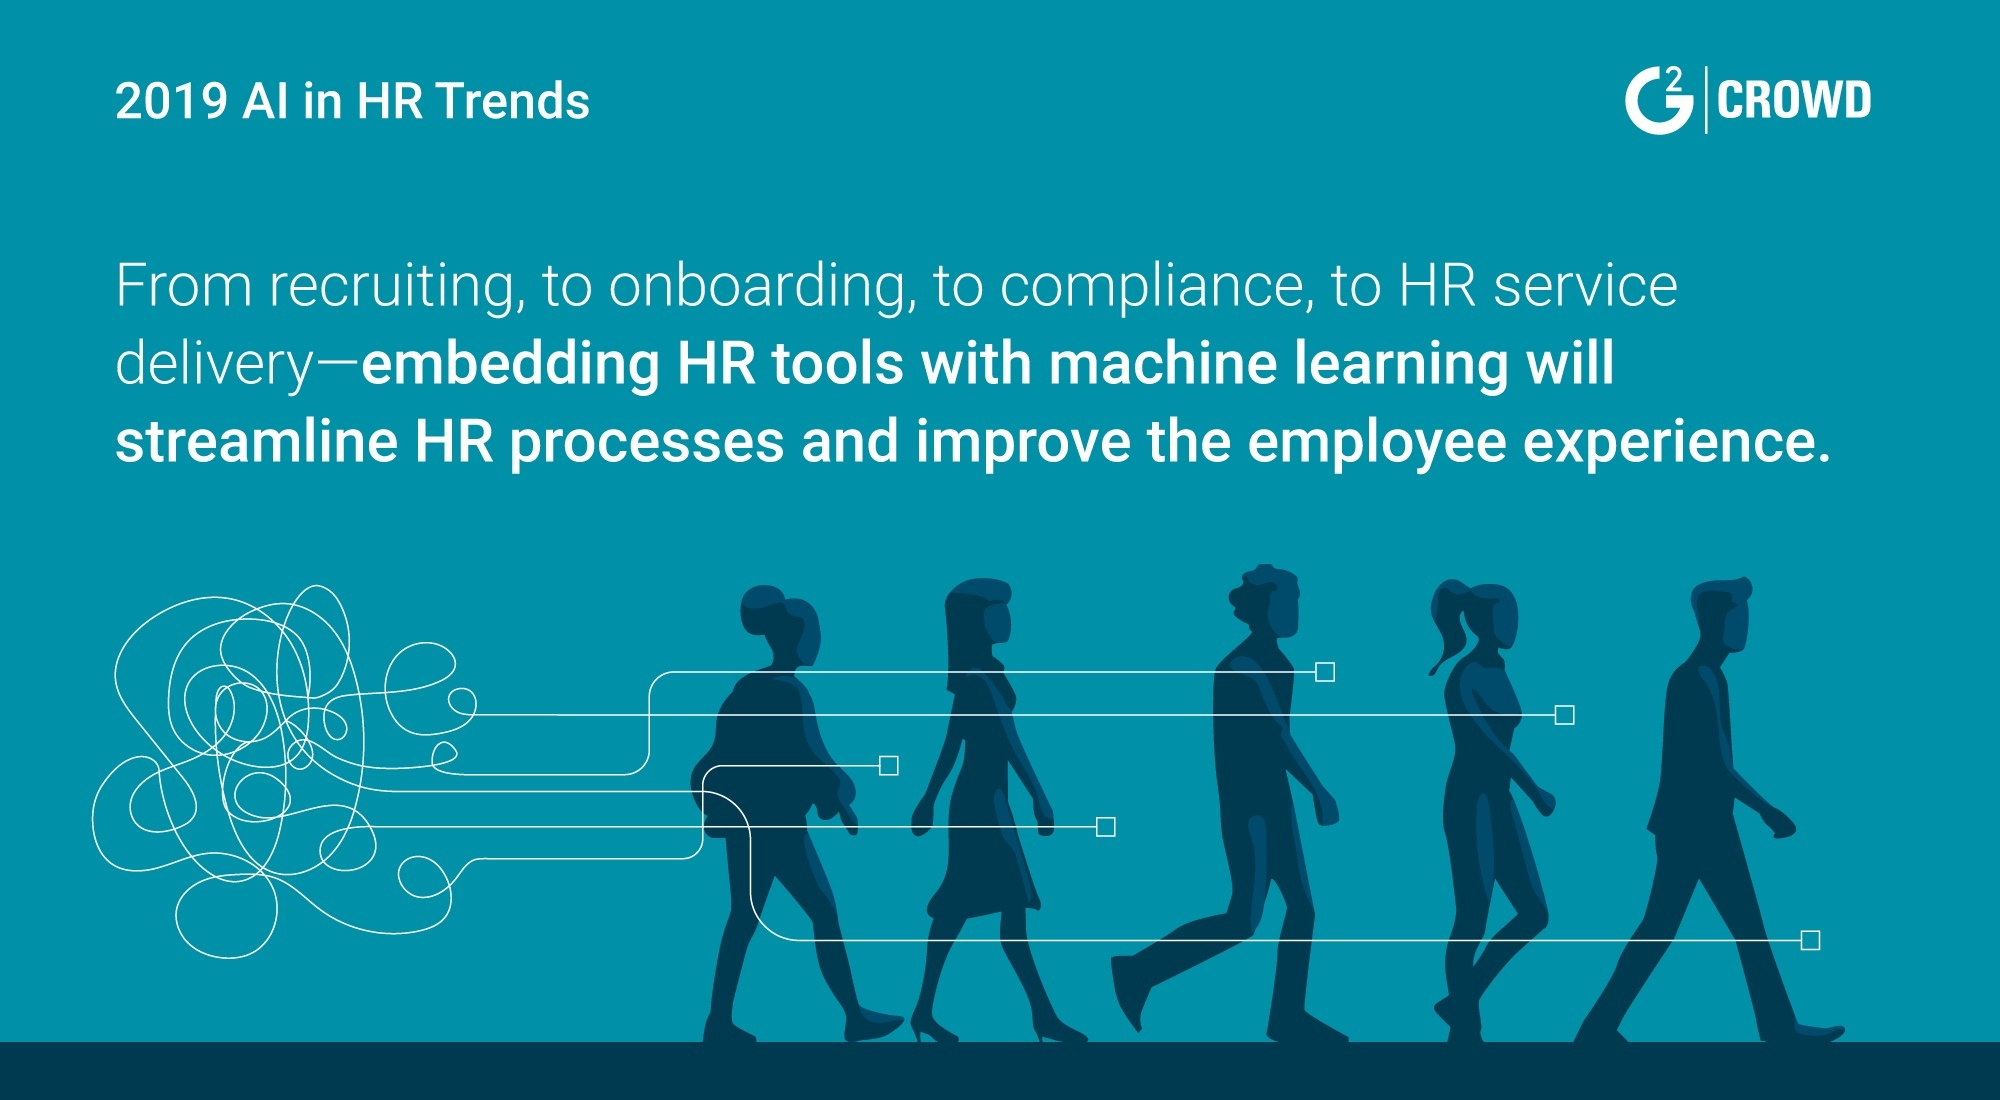 ai-in-hr-trends-for-2019